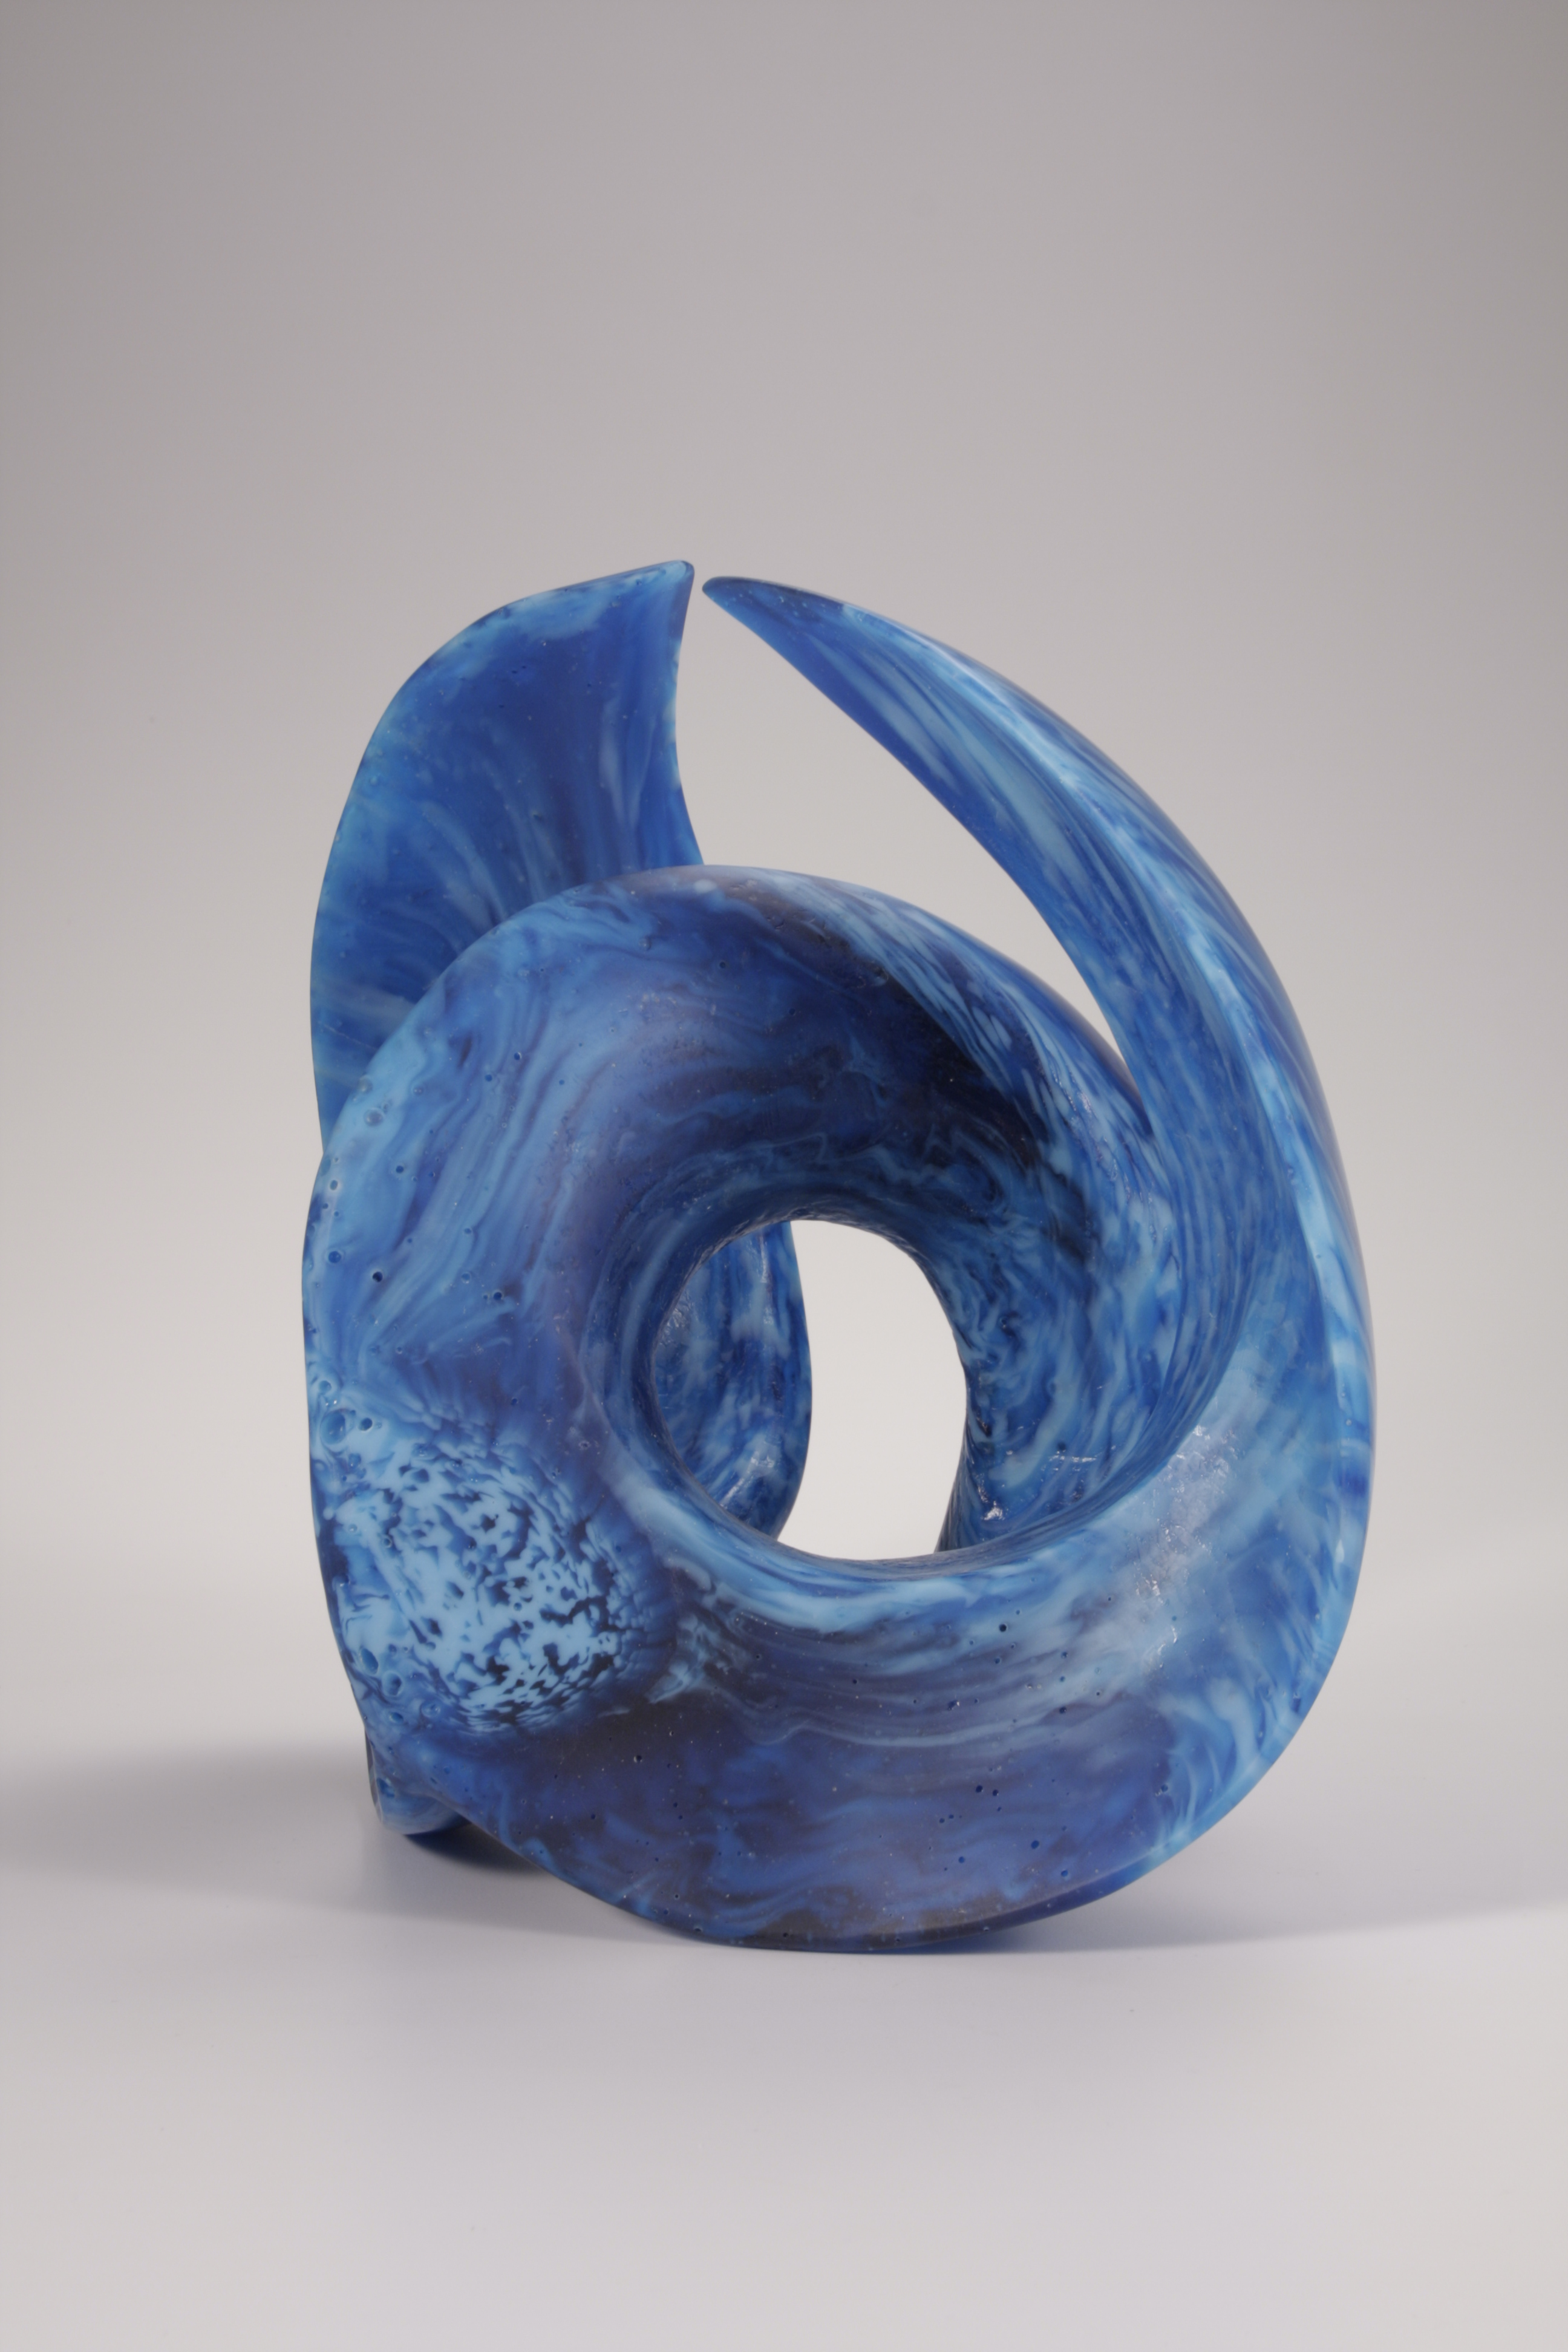 Sculpture of cast glass wave form in turquoise and light blue, side view.